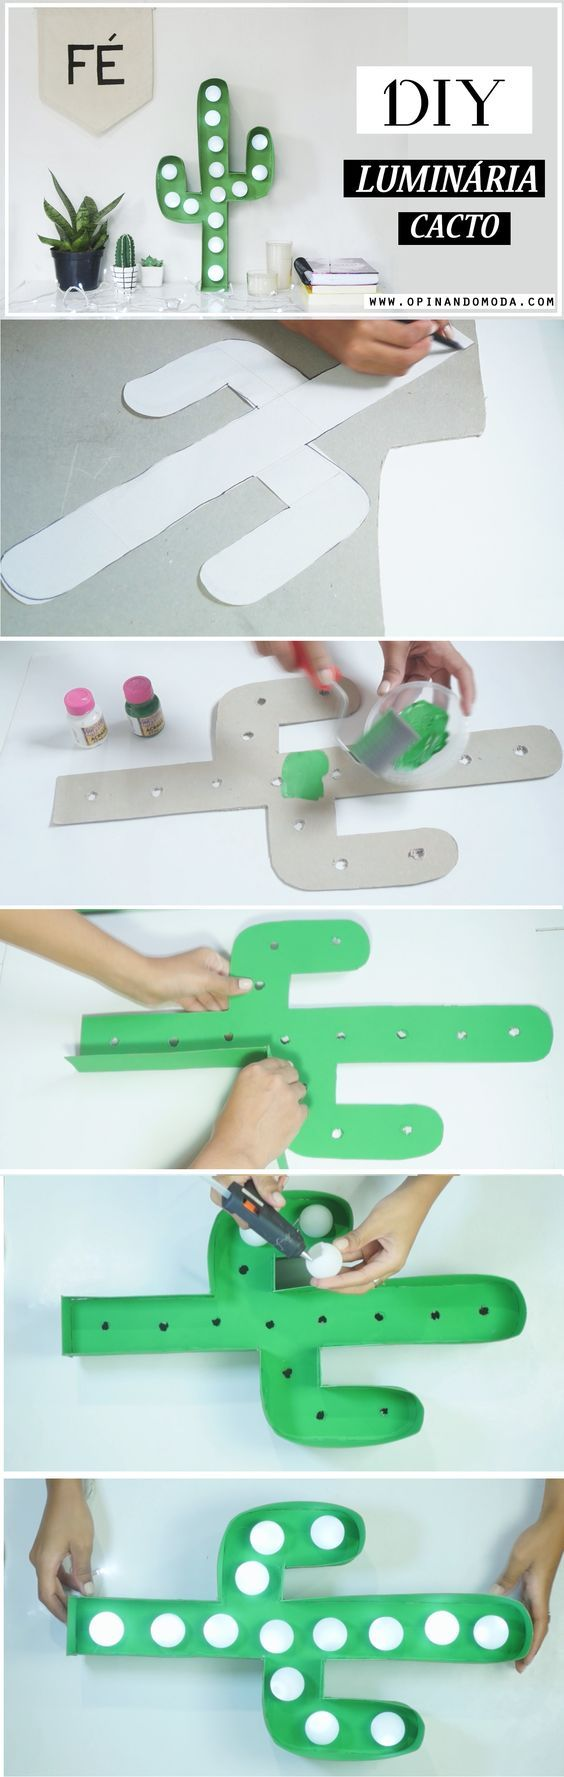 I love this so much | http://www.hercampus.com/school/casper-libero/diy-room-decor-how-express-yourself-without-spending-too-much